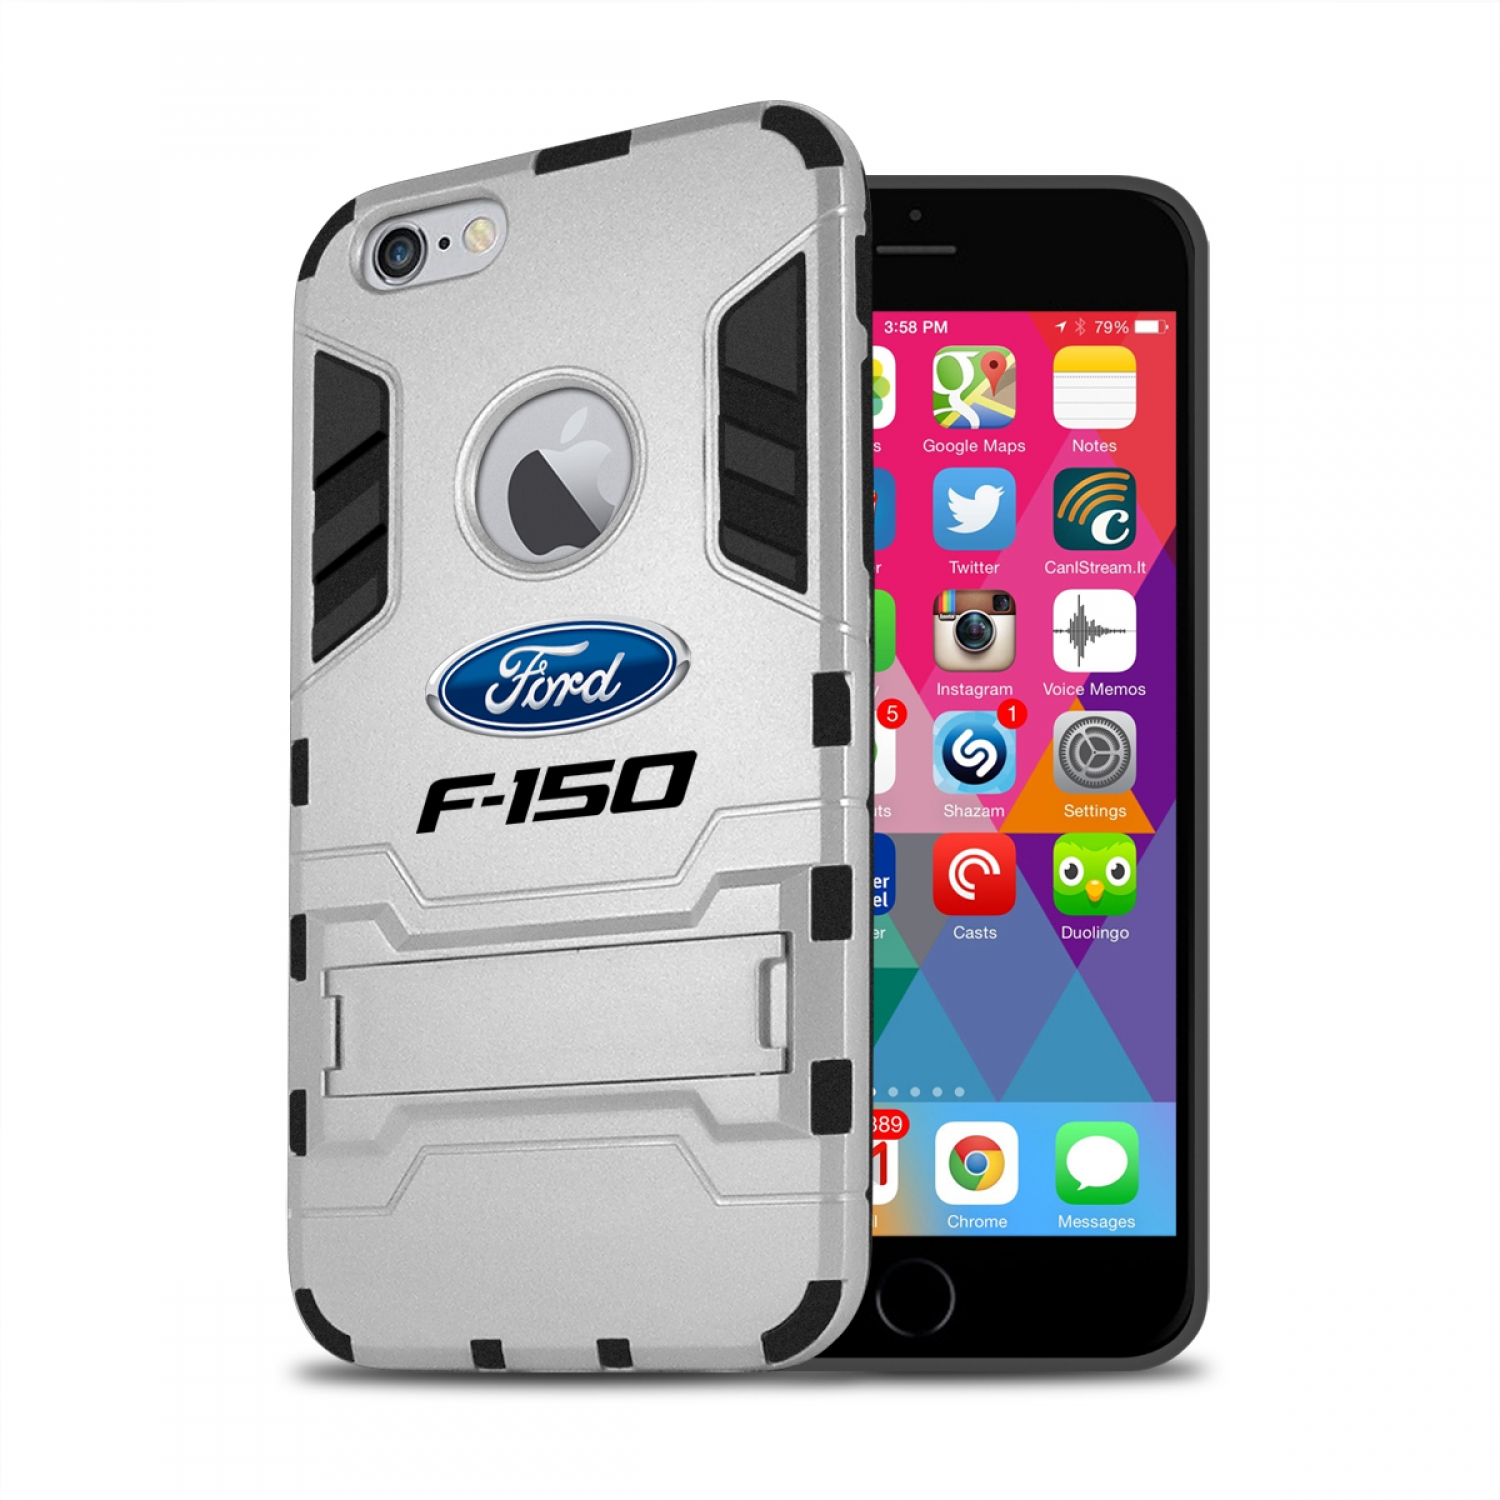 Ford F-150 iPhone 6 6s Shockproof TPU ABS Hybrid Silver Phone Case